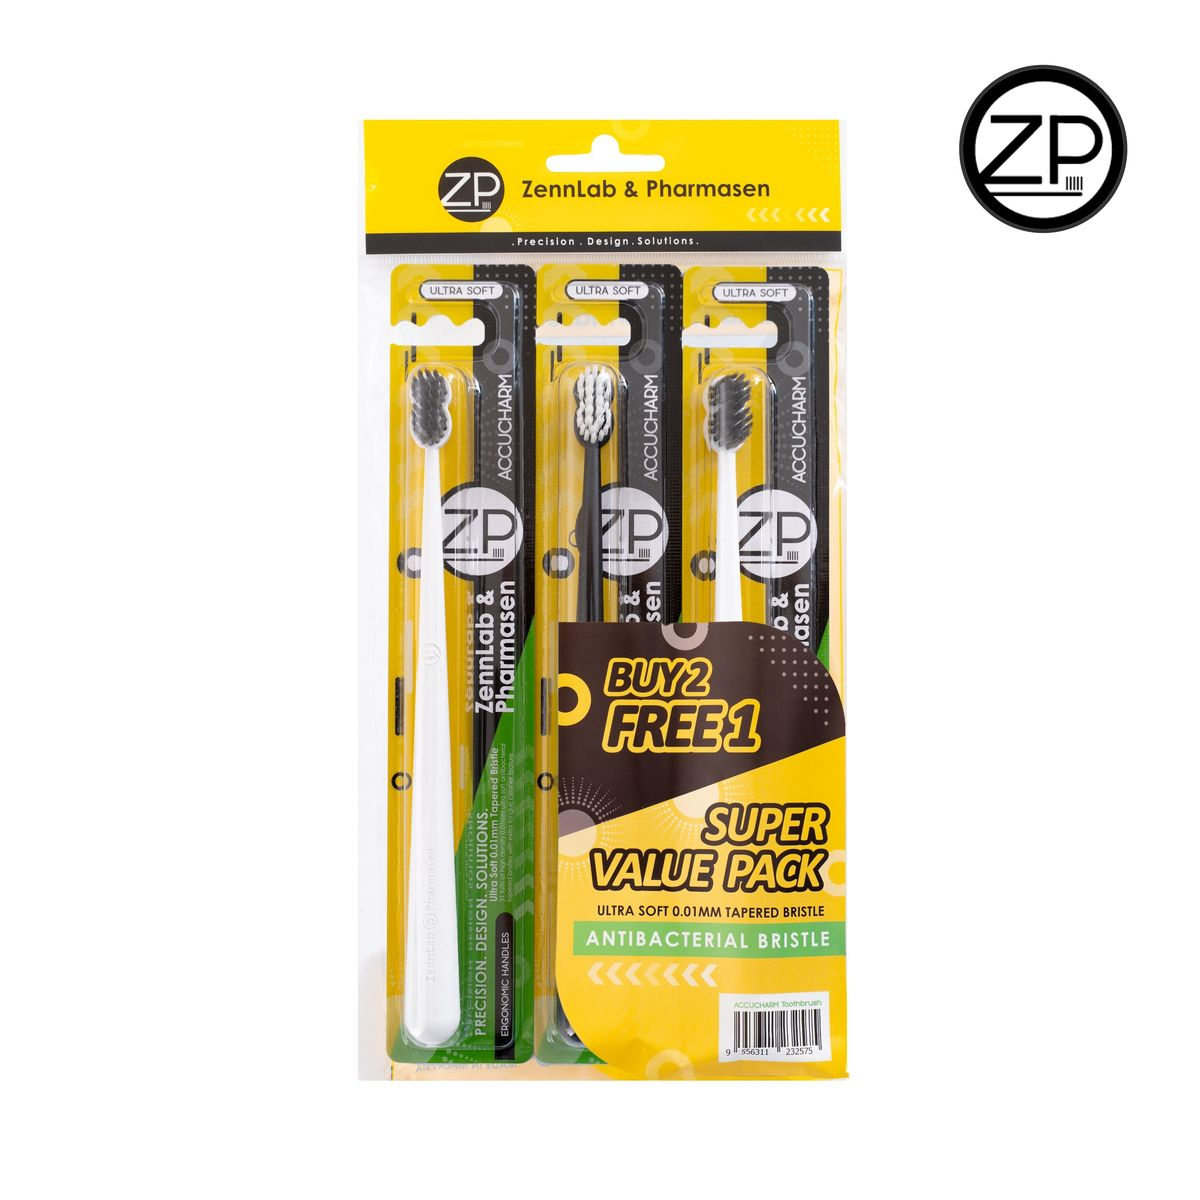 Zennlab Pharmasen Toothbrush 3's (0.01 Antibacterial) - Accucharm